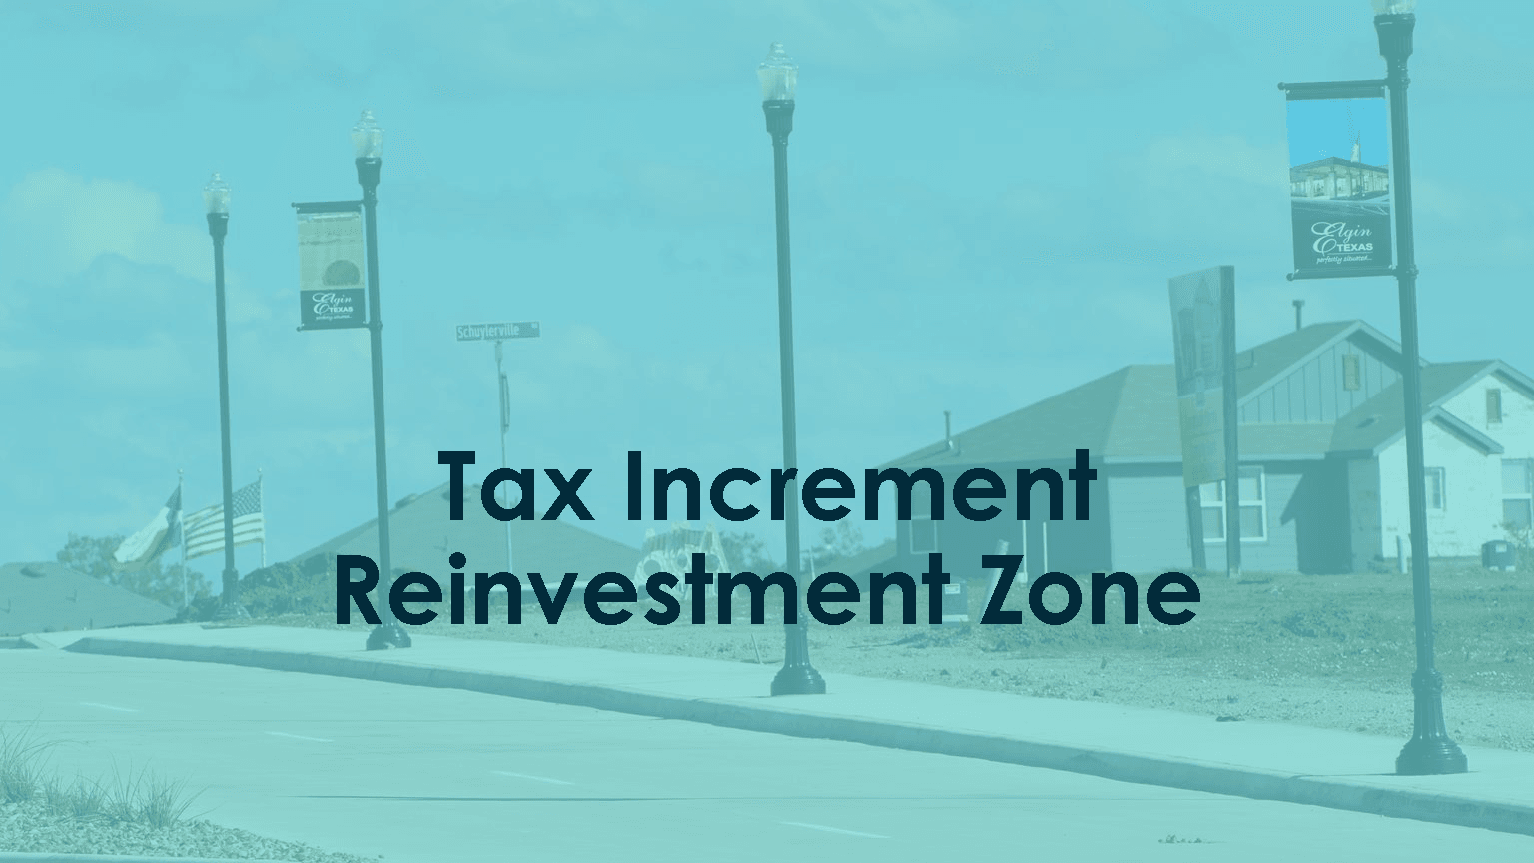 Tax Increment Reinvestment Zone